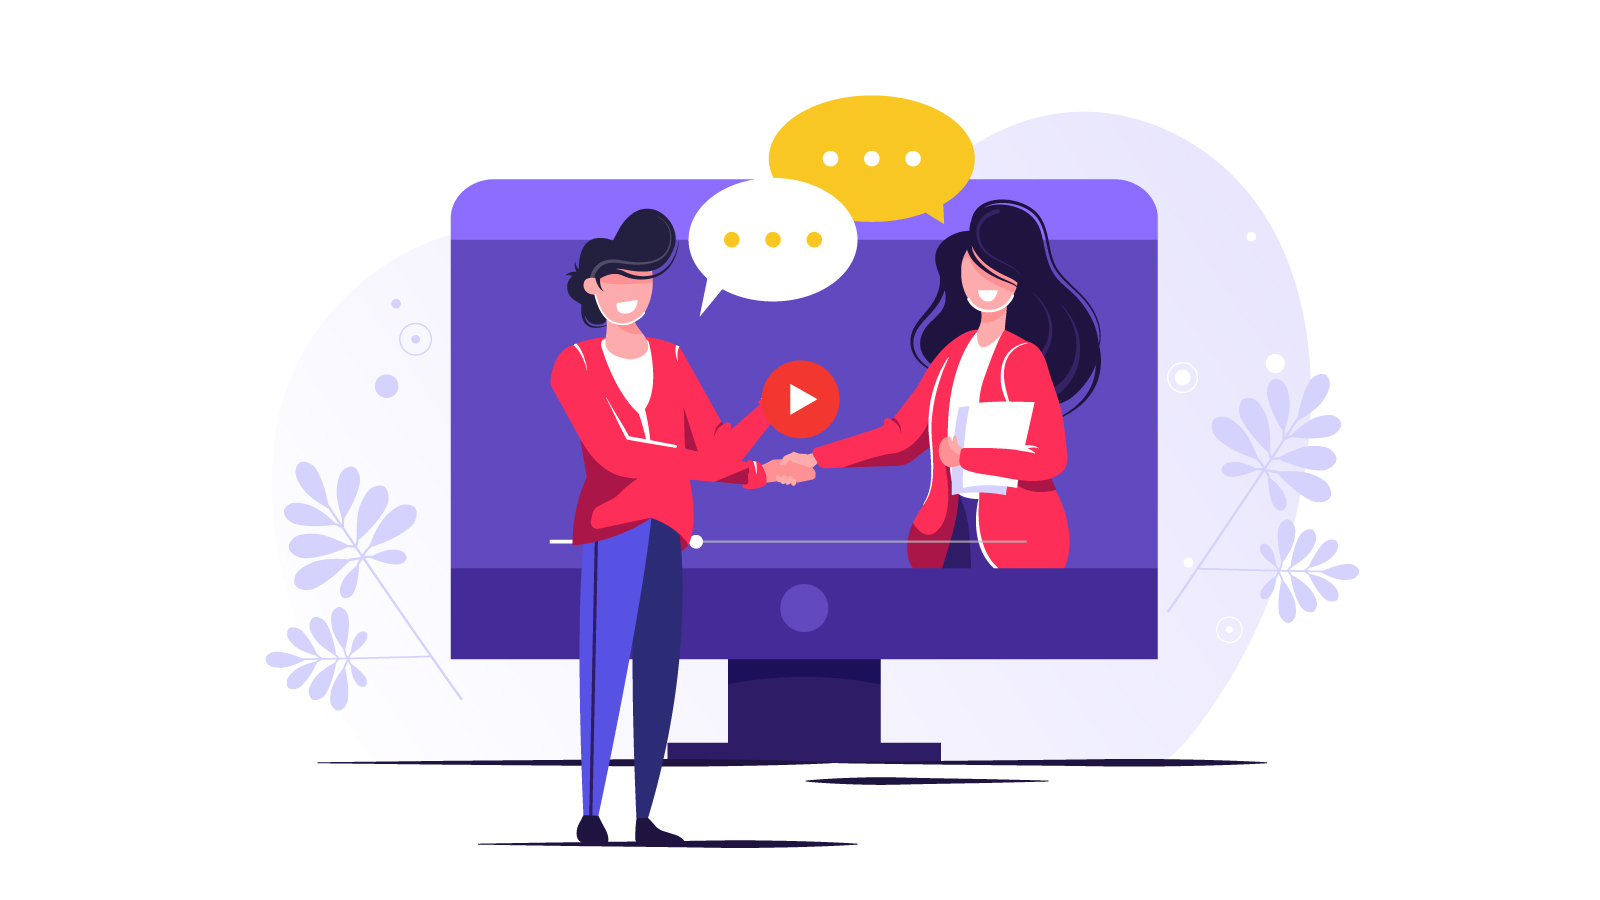 How To Create An Engaging Video Introduction For Your Brand